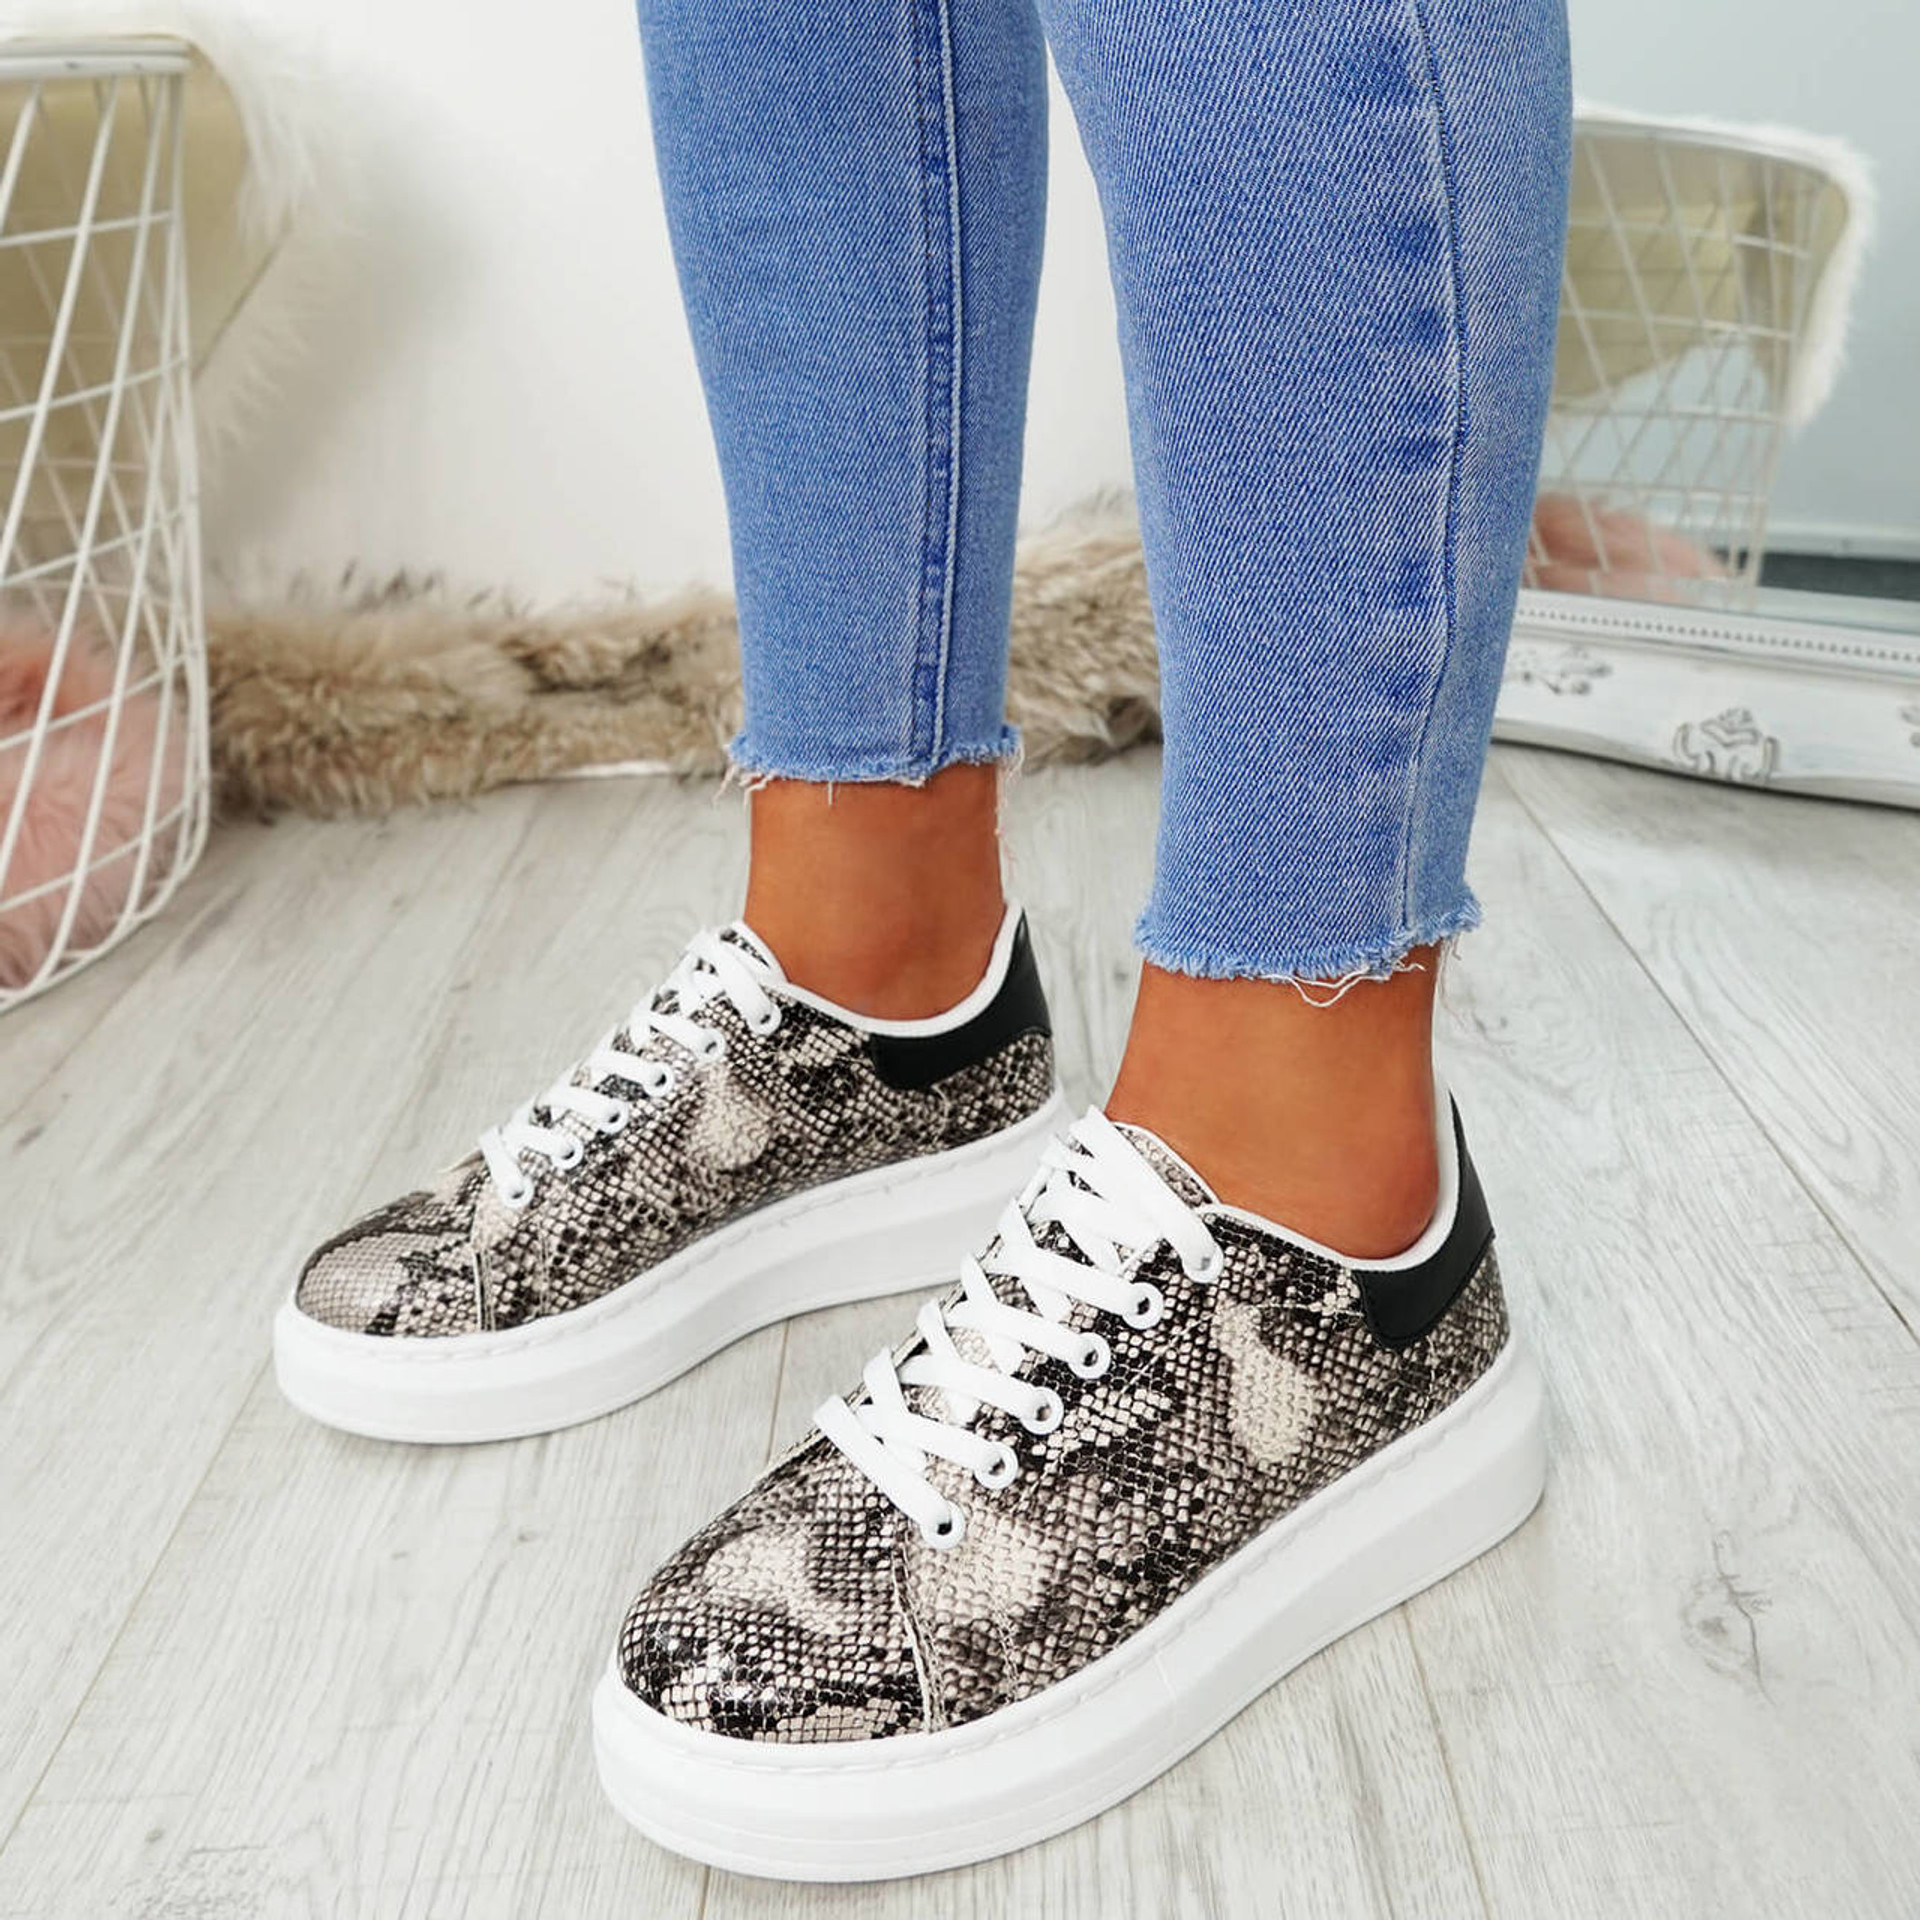 Picma Snake Lace Up Trainers